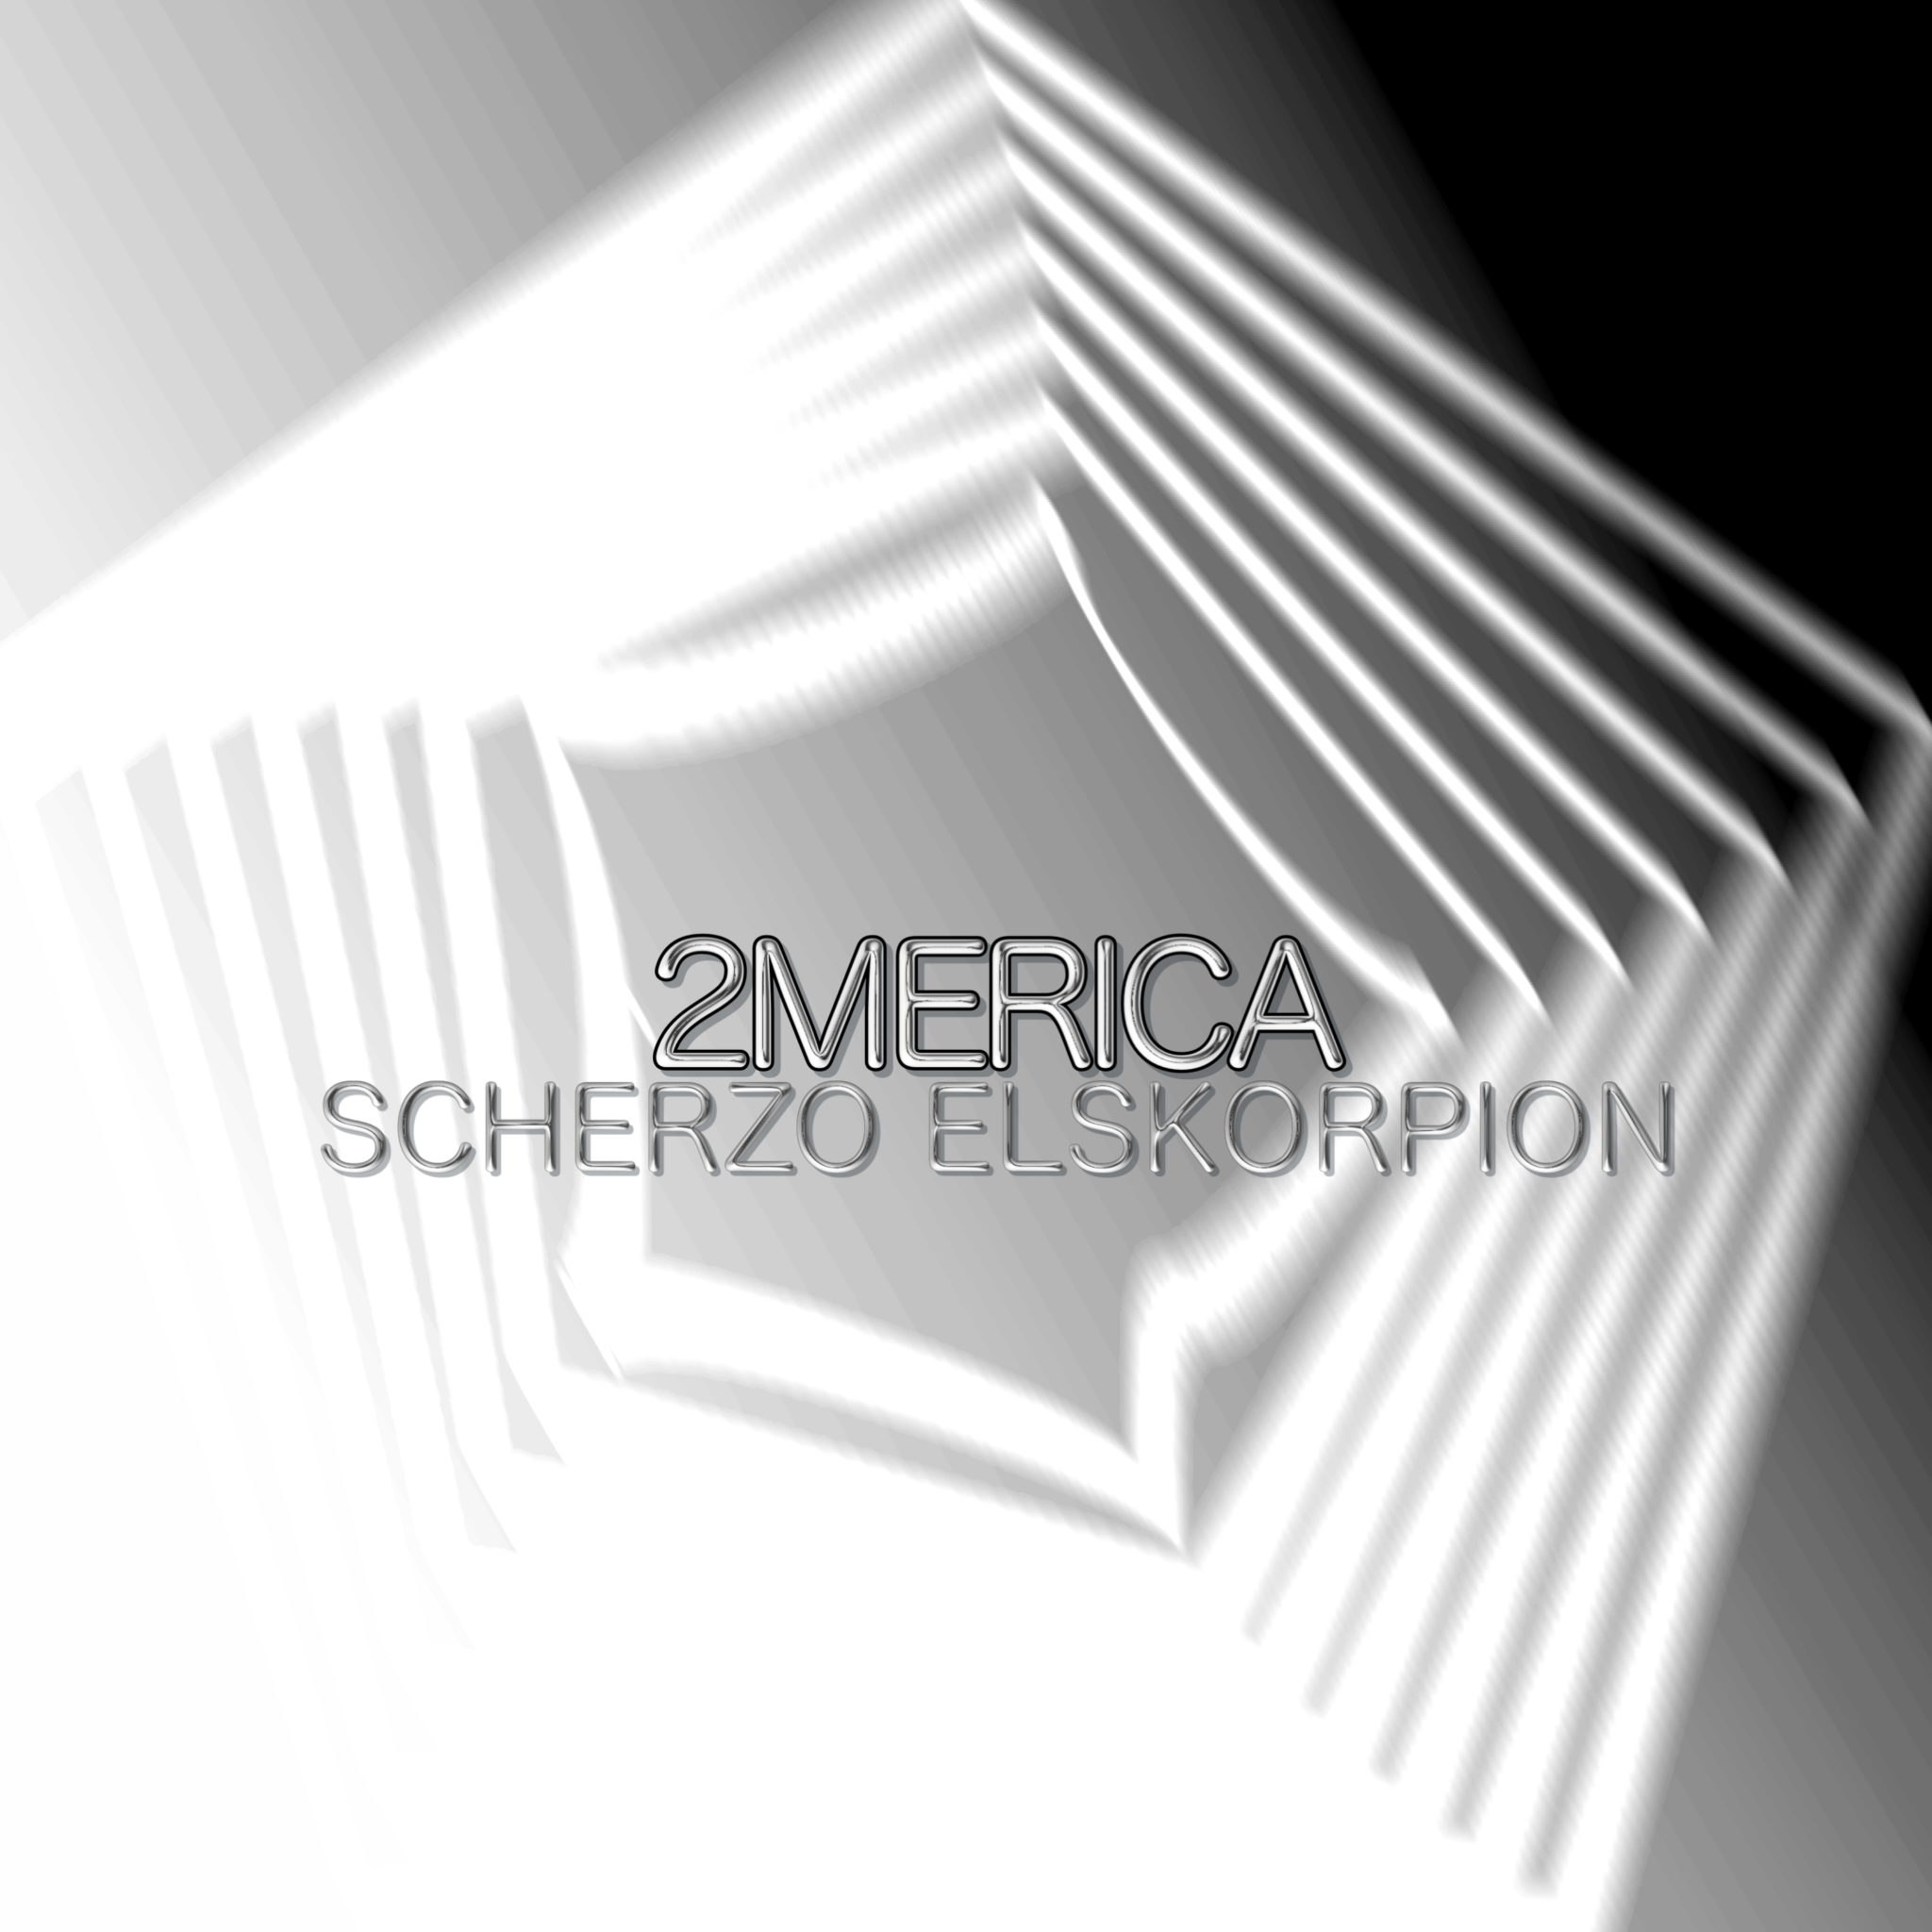 2MERICA SCHERZO ELSKORPION LP COVER